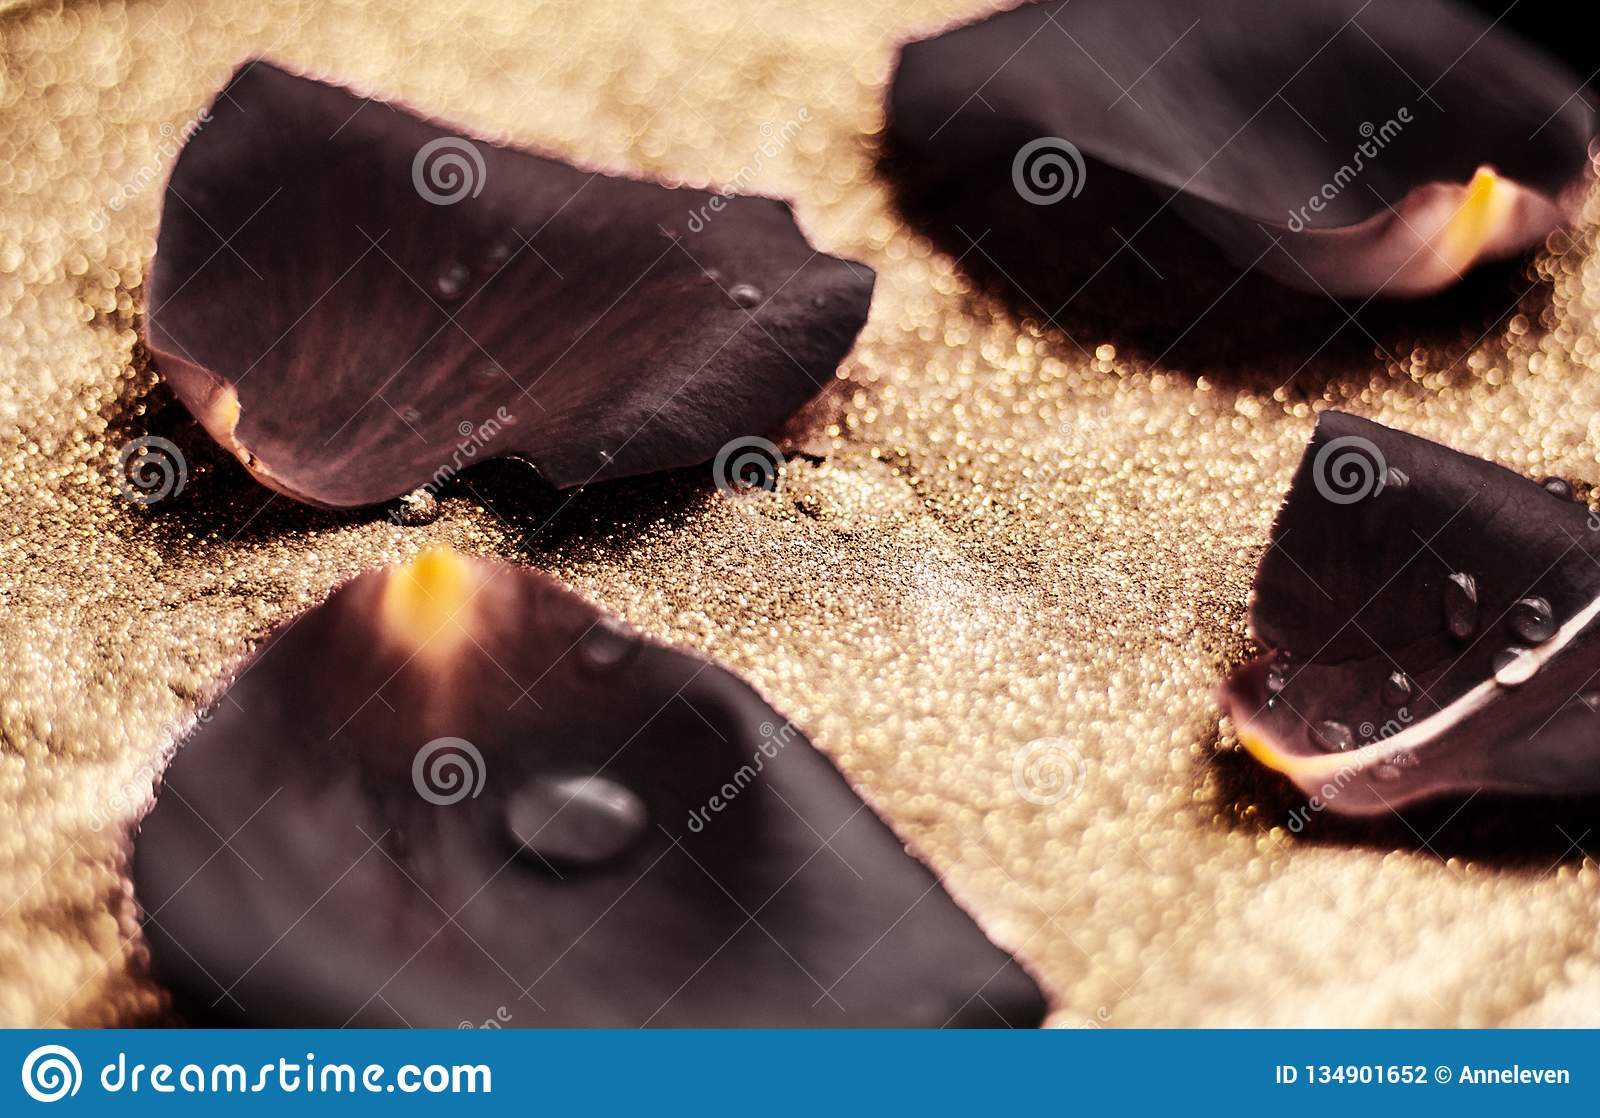 black rose flower petals - wedding, holiday and floral garden styled concept